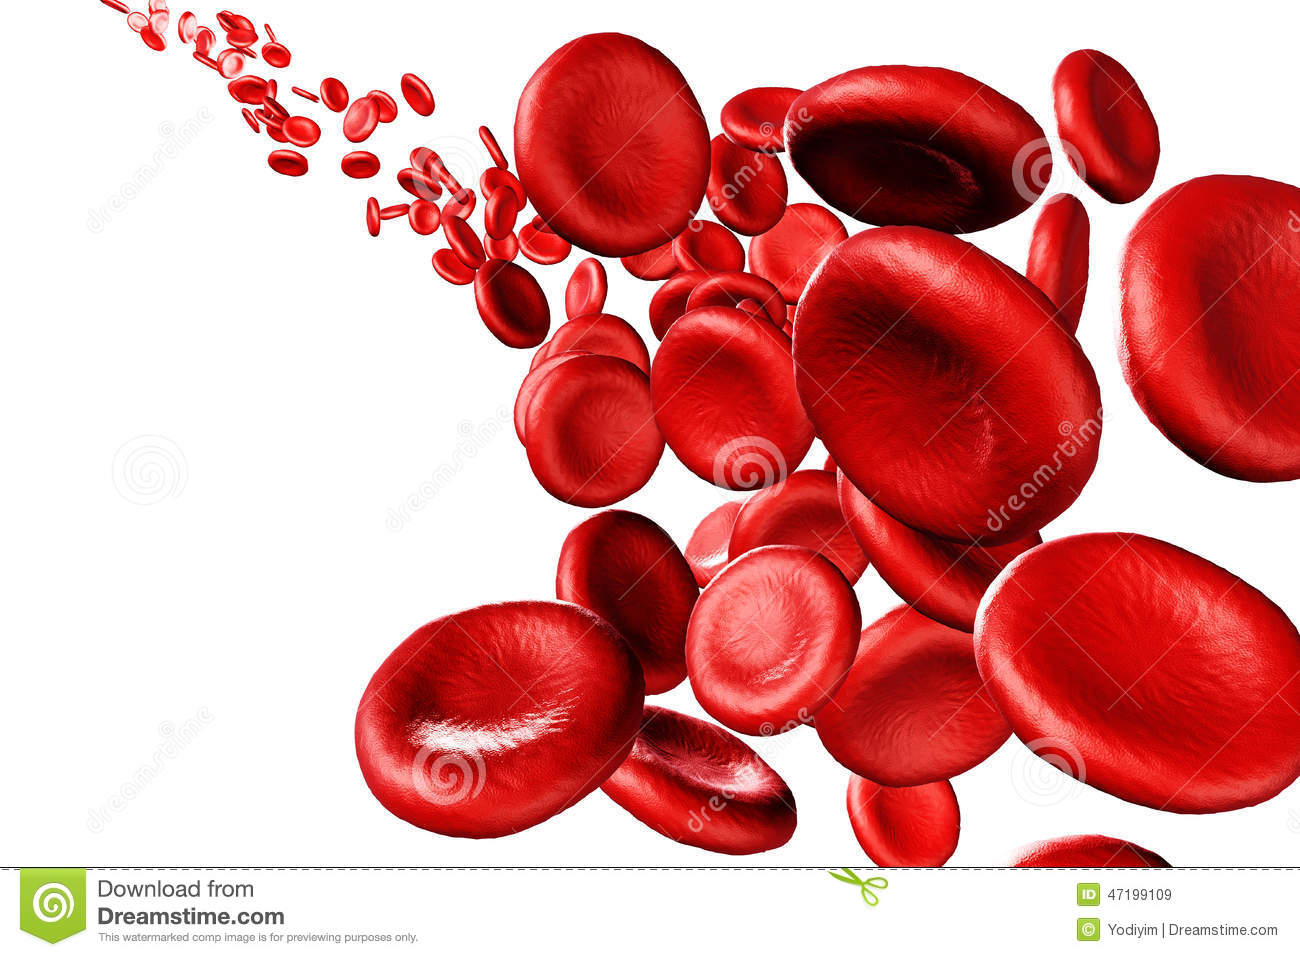 red blood cells essay